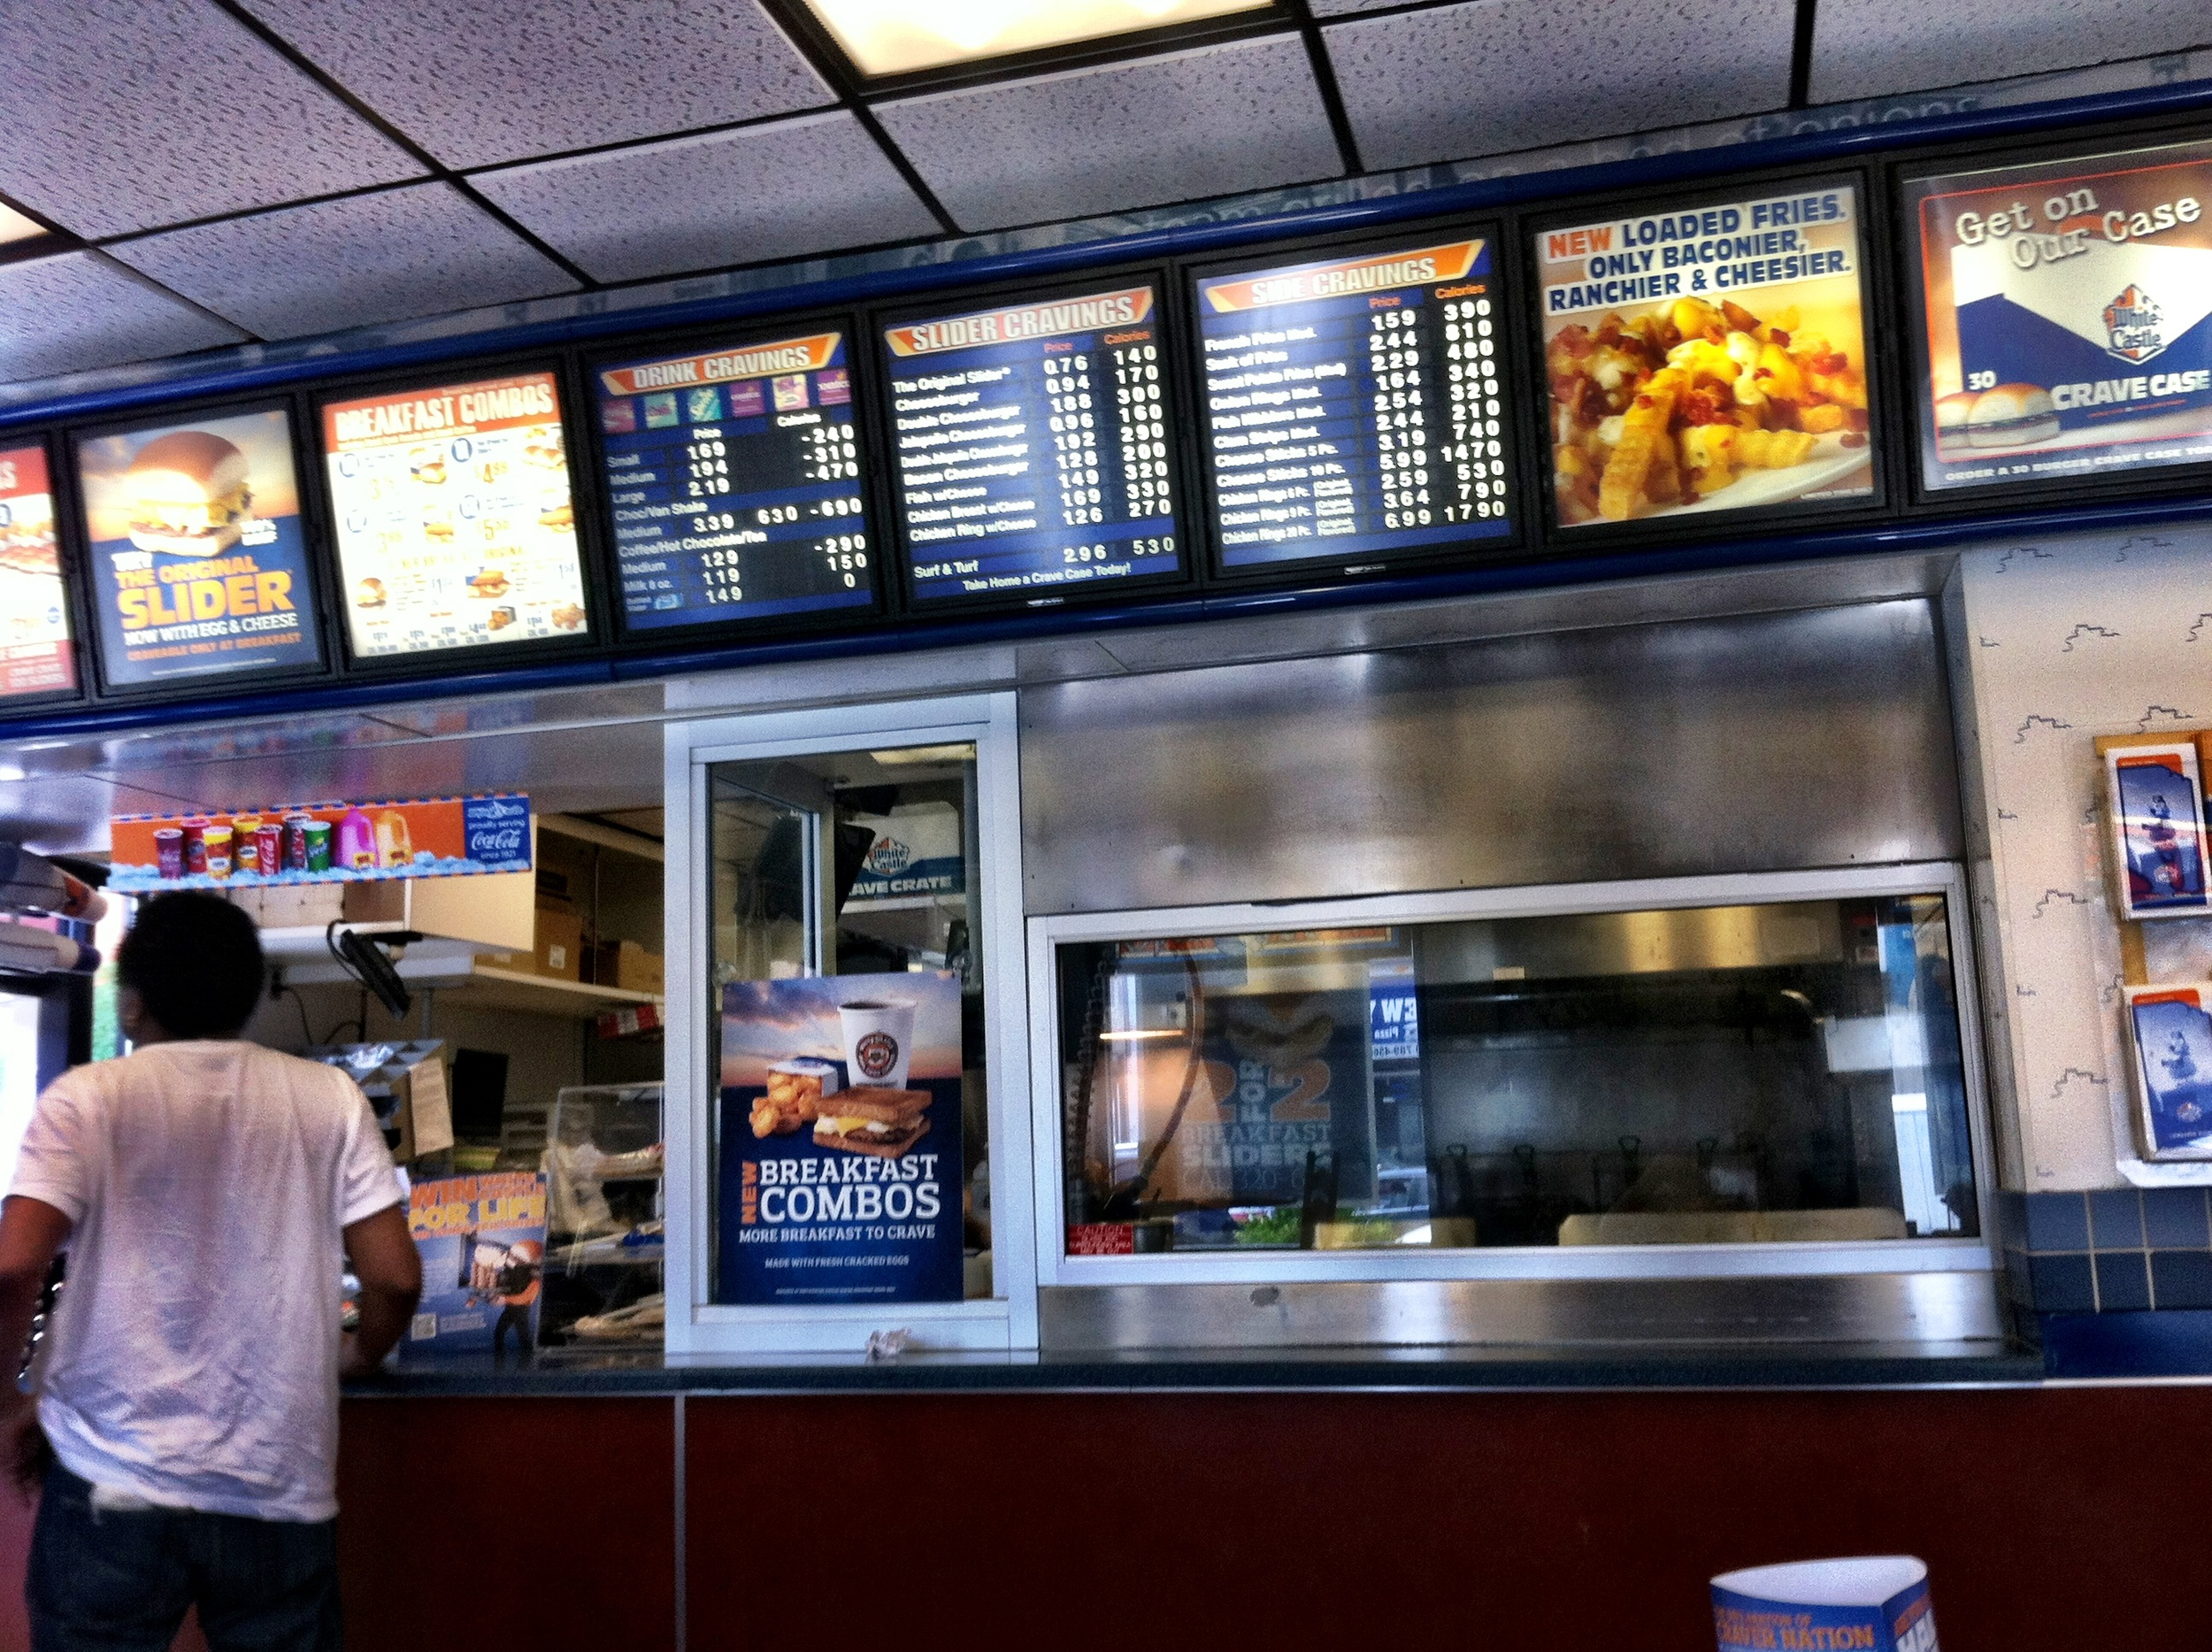 White Castle Counter.JPG